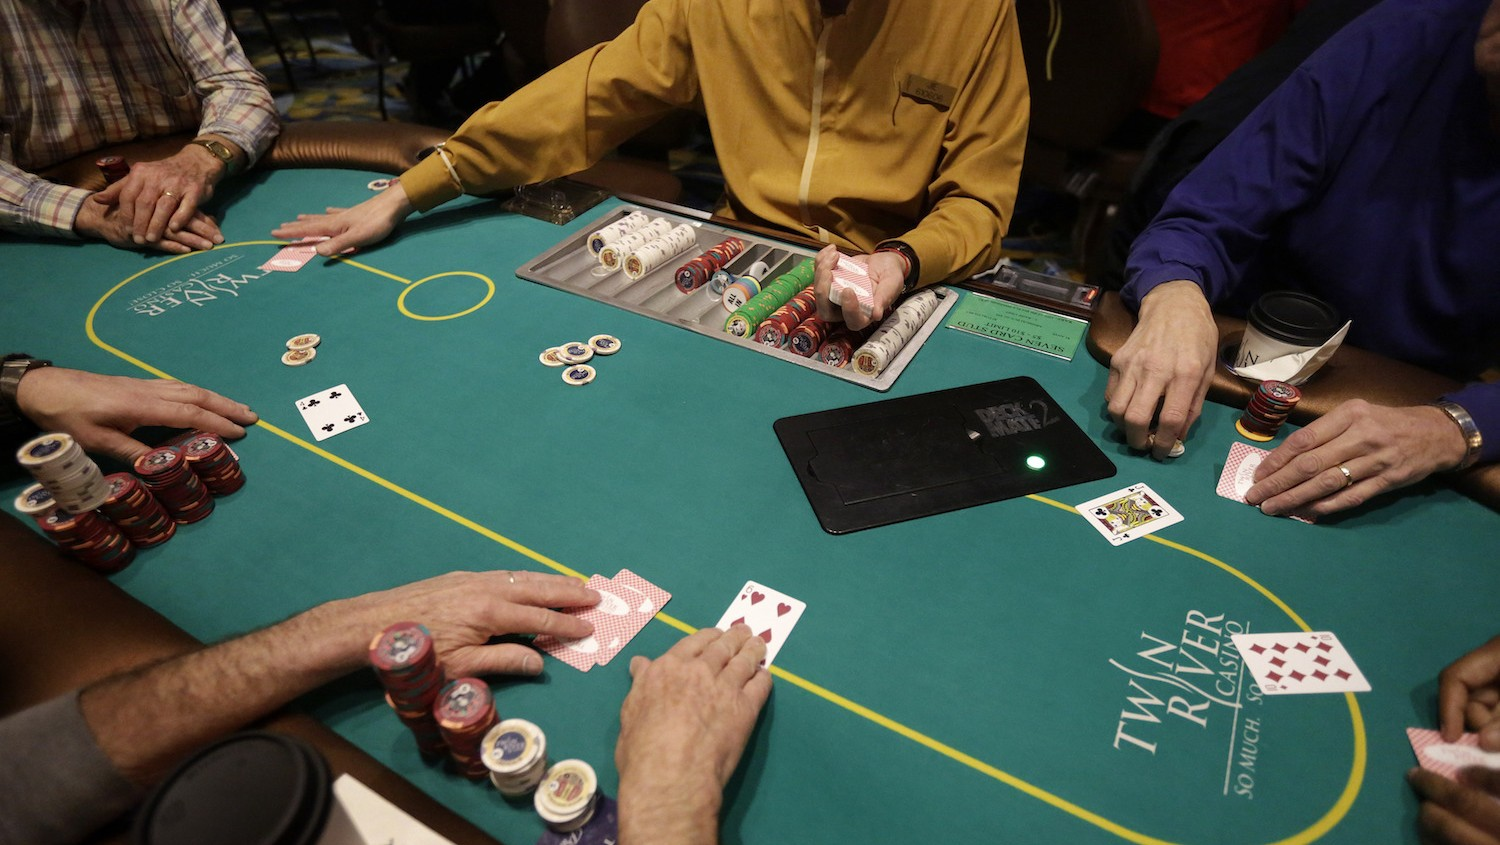 Could Professional Poker Players Be On The Verge Of Losing Their Livelihoods To Automation?